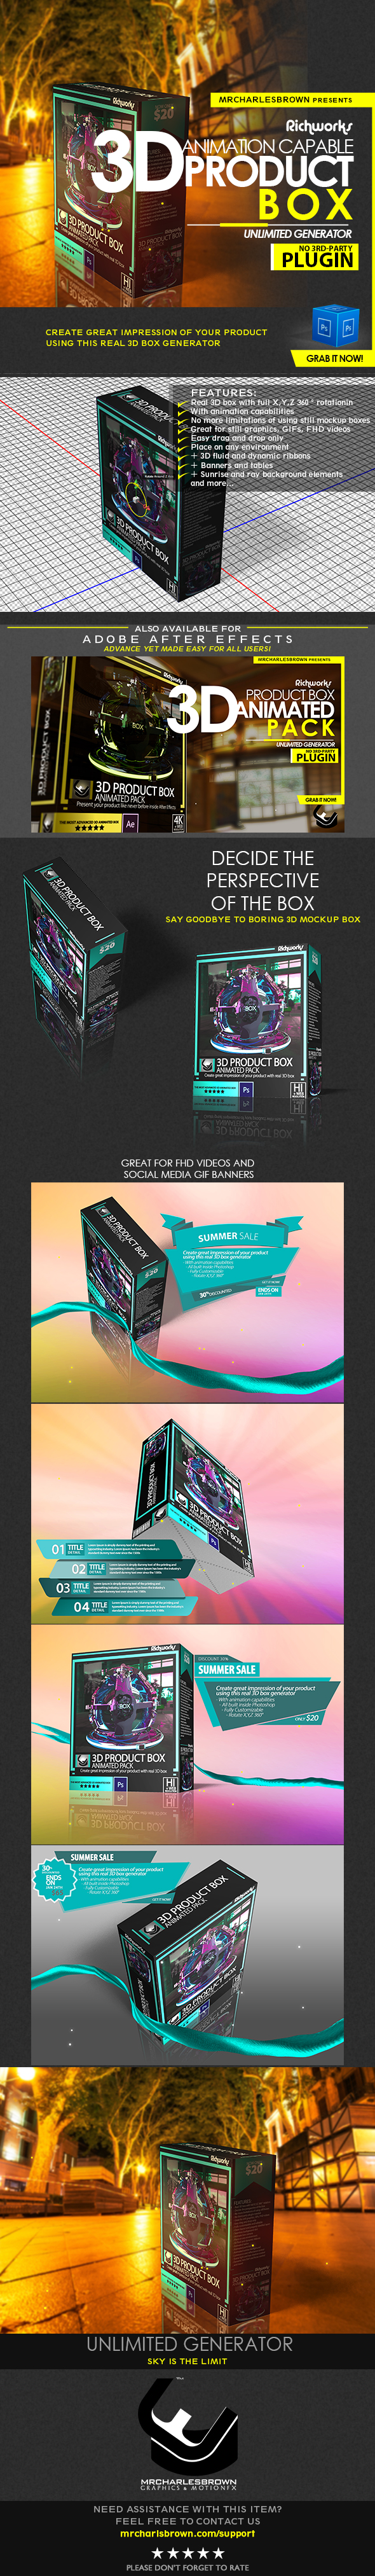 Richworks 3D Product Box For Photoshop - Photo Effects Actions